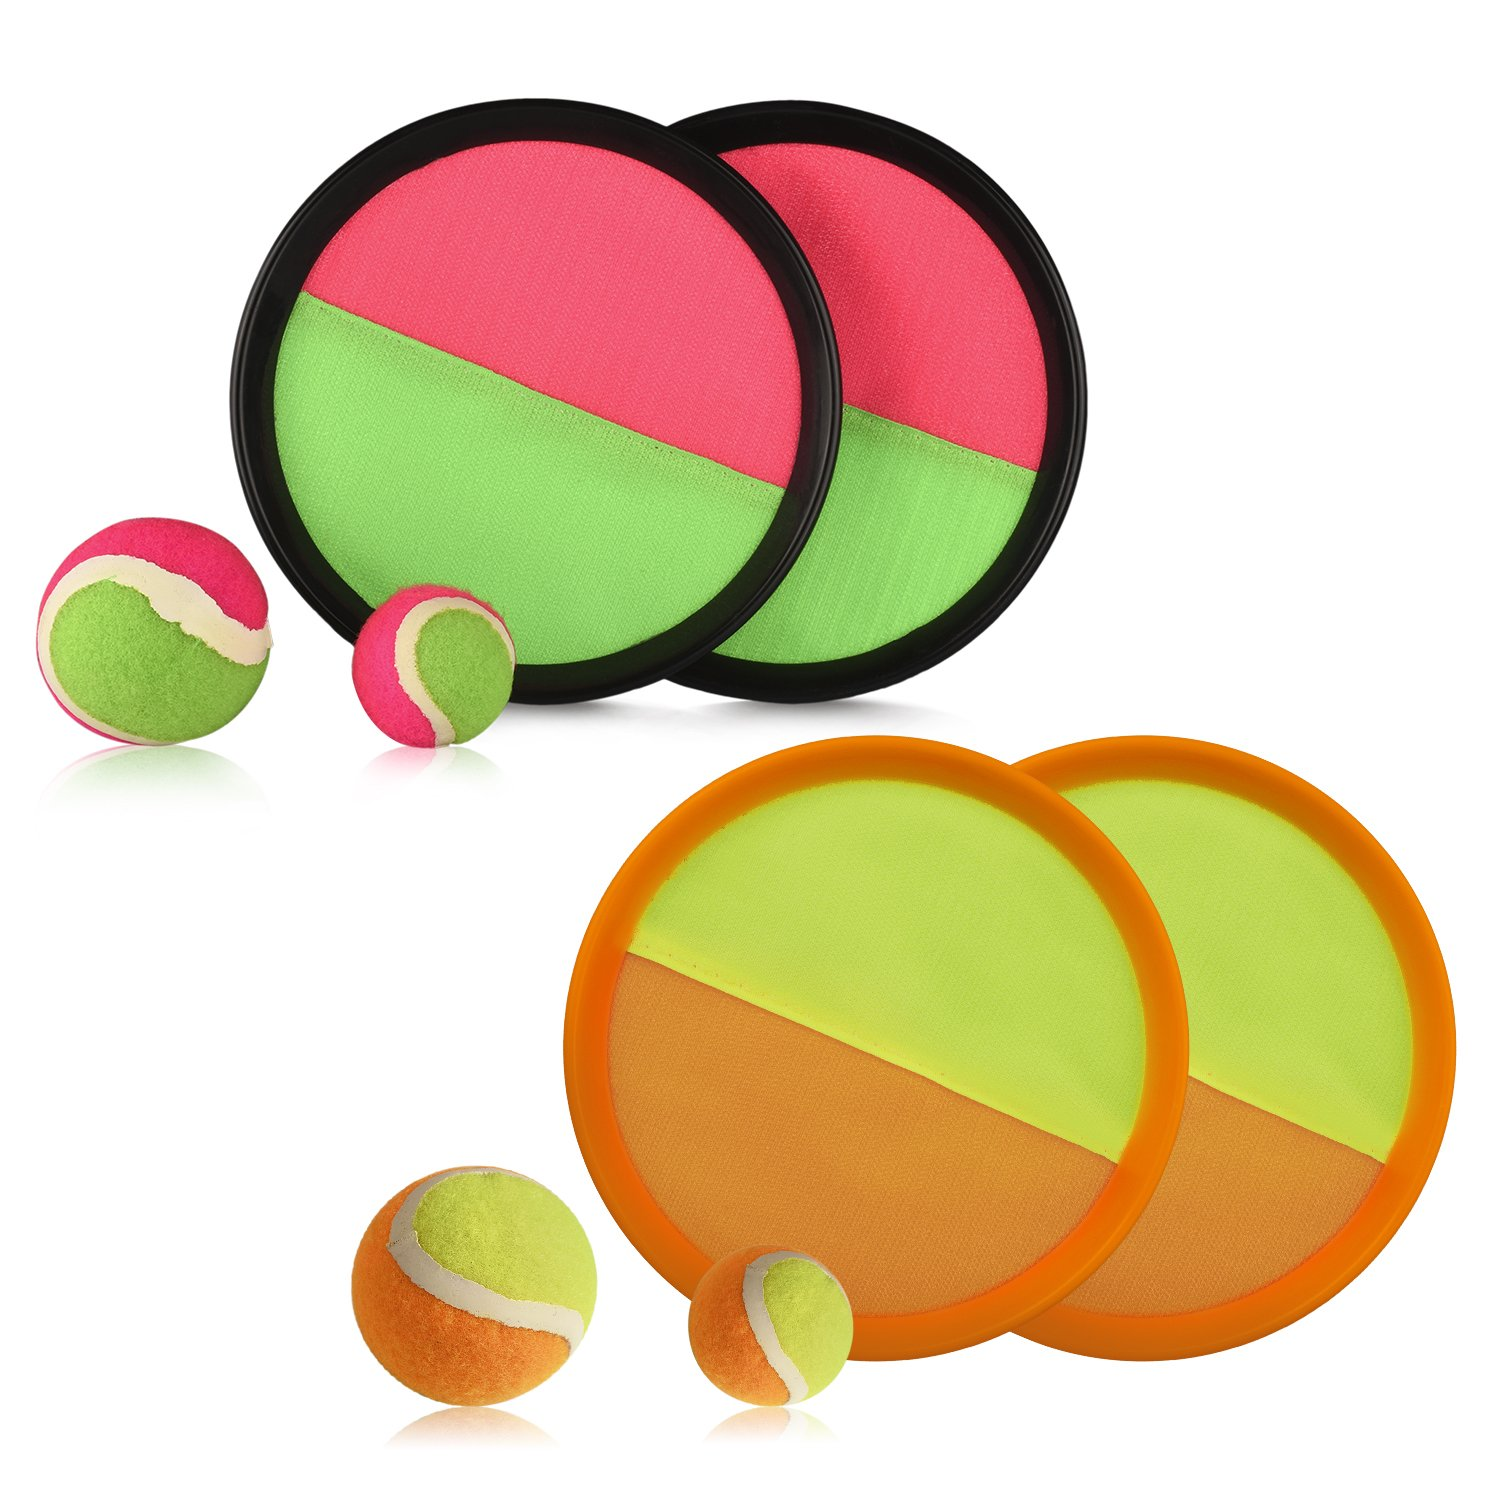 Paddle Toss and Catch Game Set - Self-Stick Disc Paddles and Toss Ball Sport Game - Equally Suitable Game for Kids & Adults, Outdoor or Indoor - Each Set Includes 4 Paddles and 2 Small & 2 Big Balls